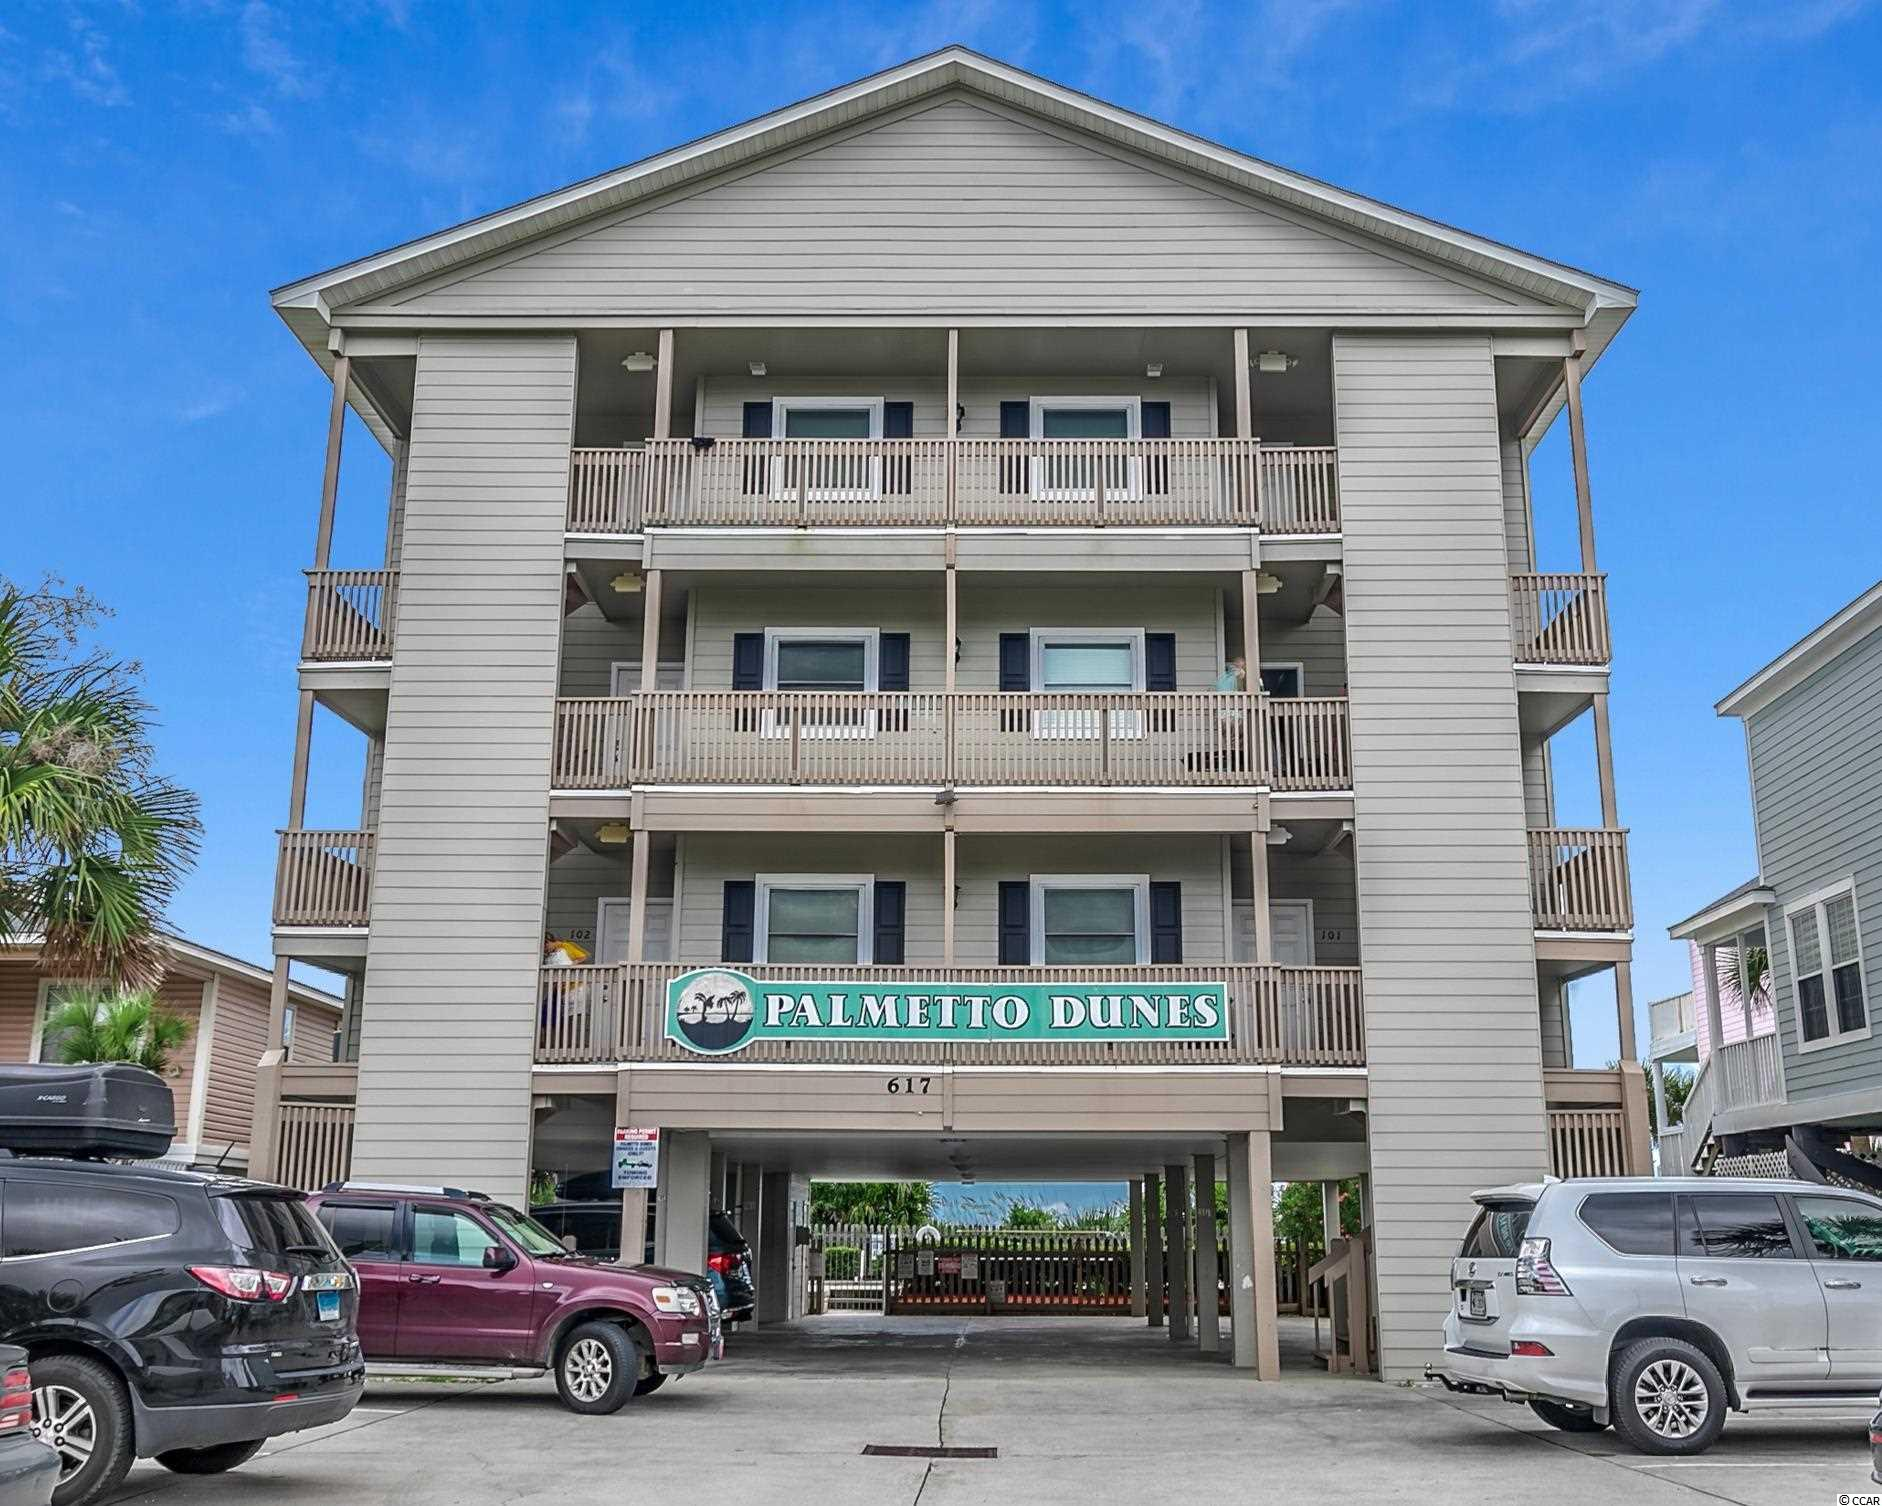 Superb views, location, and a small complex; 201 Palmetto Dunes is located directly oceanfront in the sought-after town of Surfside Beach. This second-floor end unit condominium has three bedrooms and two bathrooms, with approximately 1075 heated square feet, comes completely furnished and on a weekly rental program. This turnkey unit has the potential for high rental revenue that will defray owners' operating expenses. Why rent when you own a piece of the most pristine beaches along the Grand Strand. Palmetto Dunes is just a half-mile south of the Surfside Pier and restaurant district and is a well-maintained complex that features a large oceanfront pool, a ground-level owner storage closet, and covered parking. It also offers a warm family atmosphere with only six units in the building. The condo has spectacular views up and down the Atlantic Ocean from its private balcony with access from the living room and master bedroom. Make sure to check out the Matterport 3D Virtual Tour. It's like you're walking through the condo. Link to the virtual tour: www.bit.ly/201Palmetto